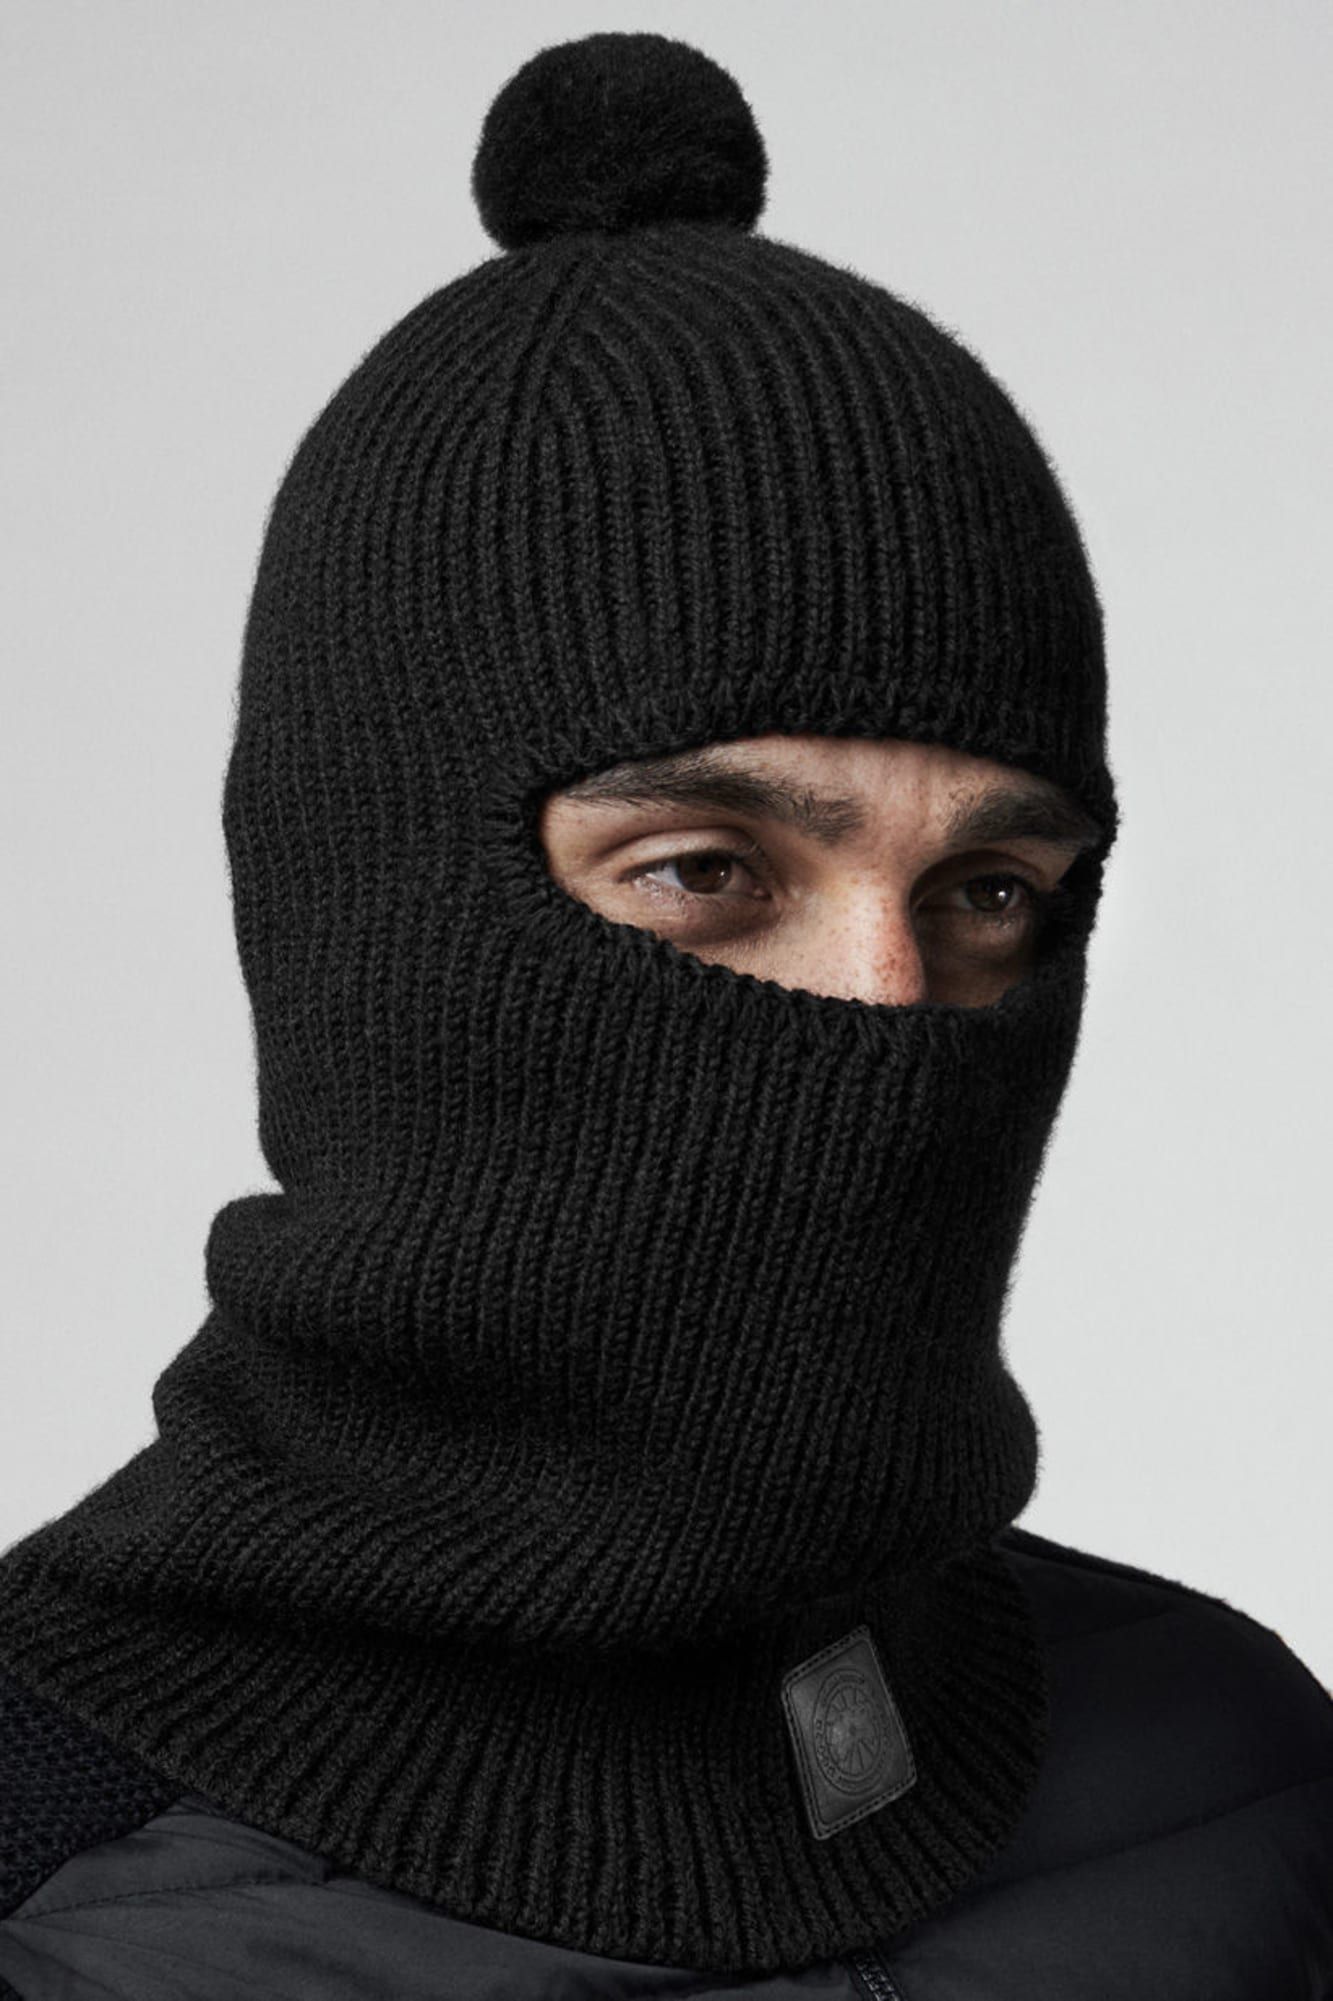 fcd34d2c0a5 Men s Wool Balaclava